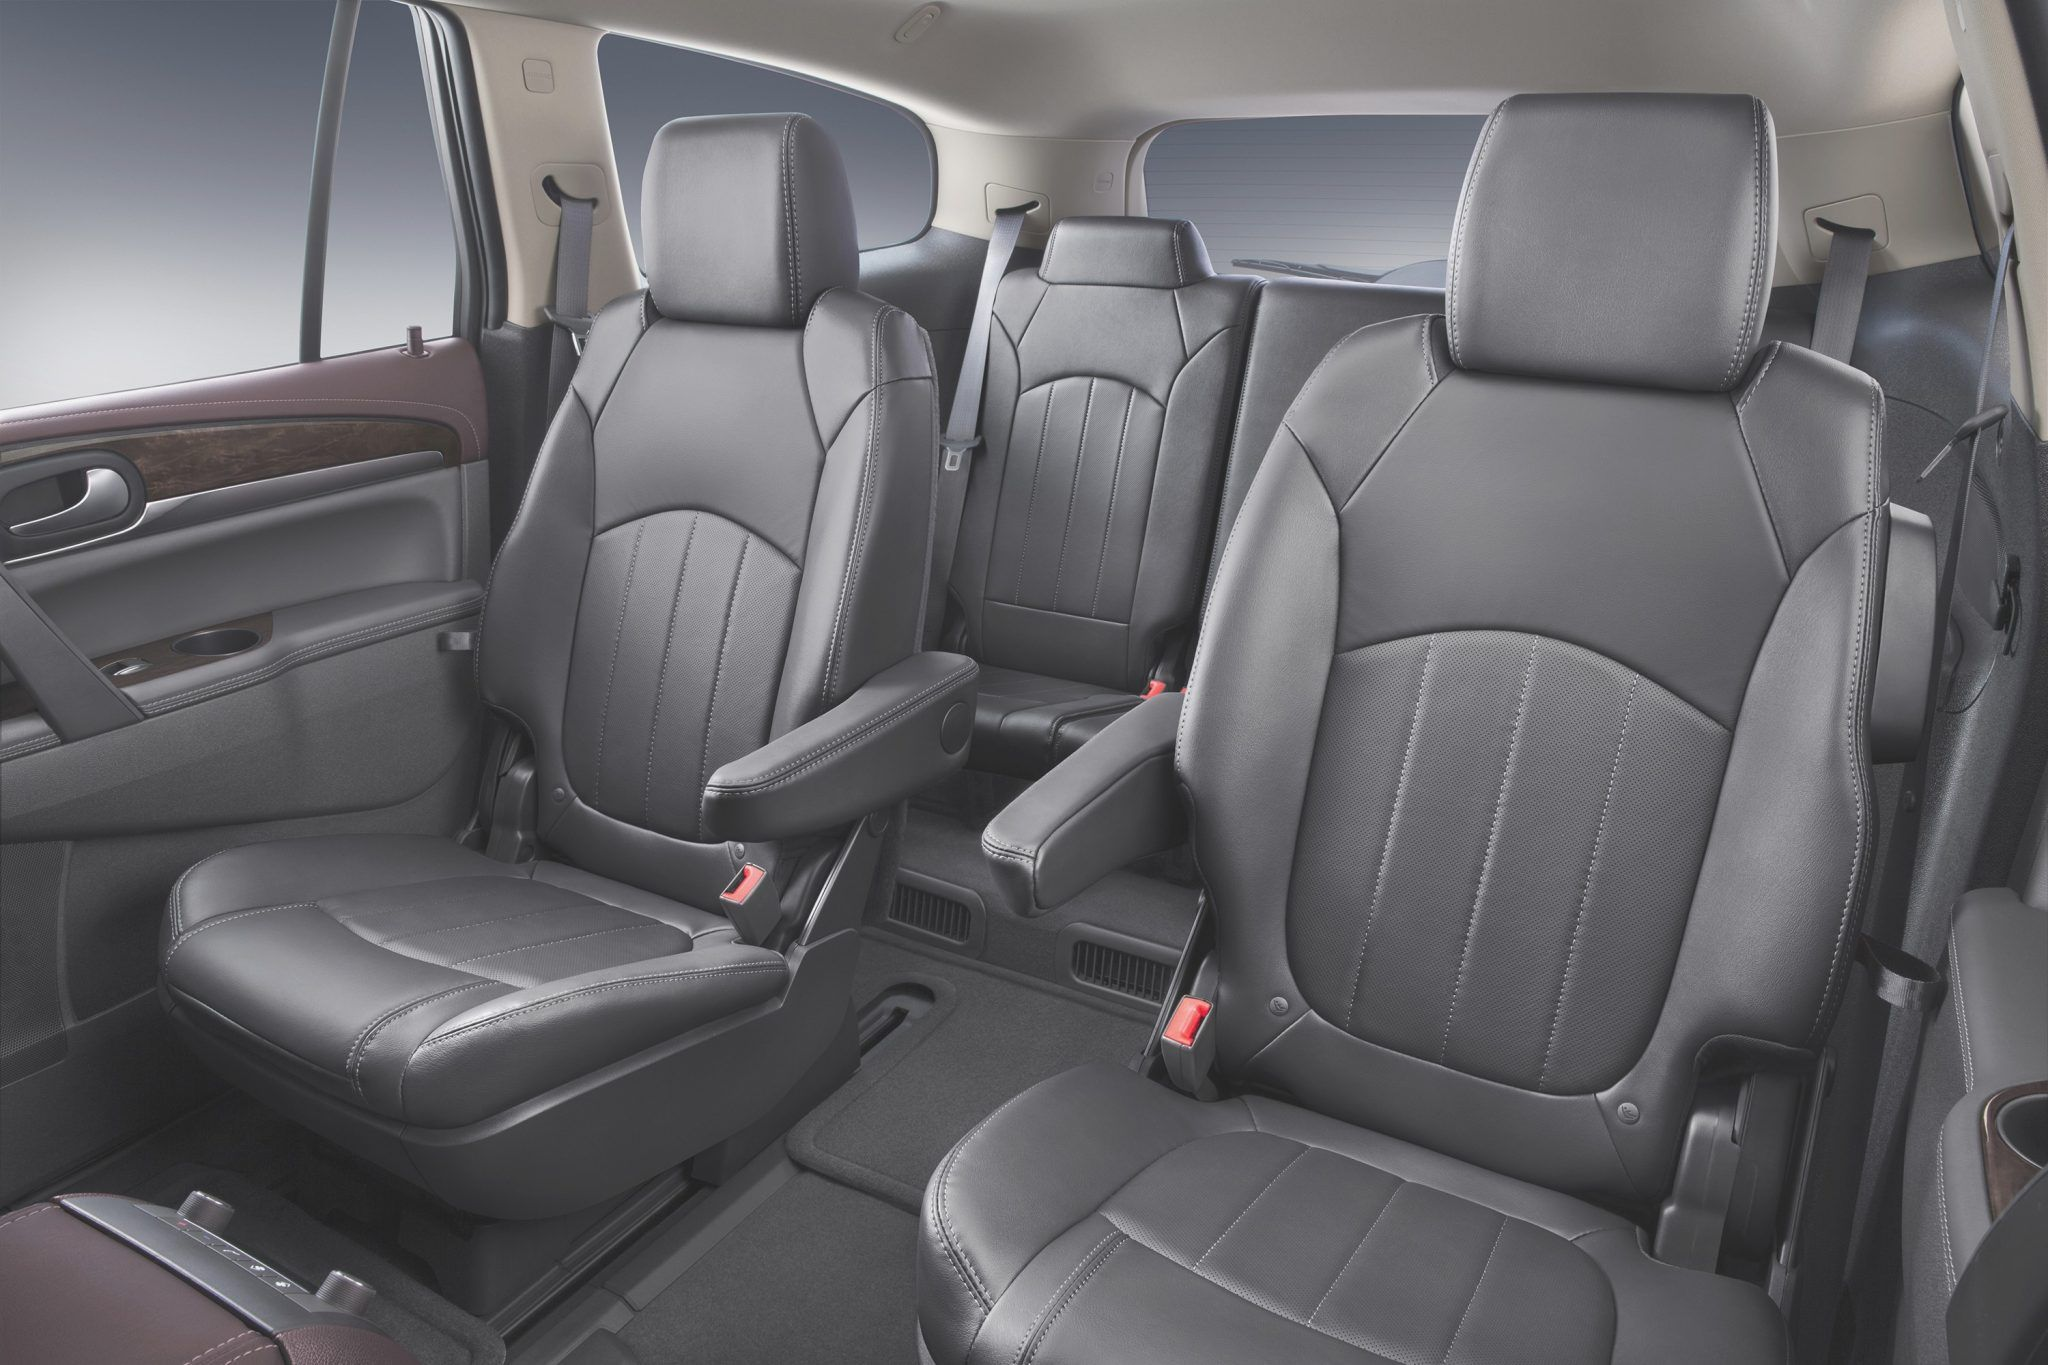 Suv With Captain Chairs Suv With Captain Chairs 7 Passenger Suv With Captain Chairs 2016